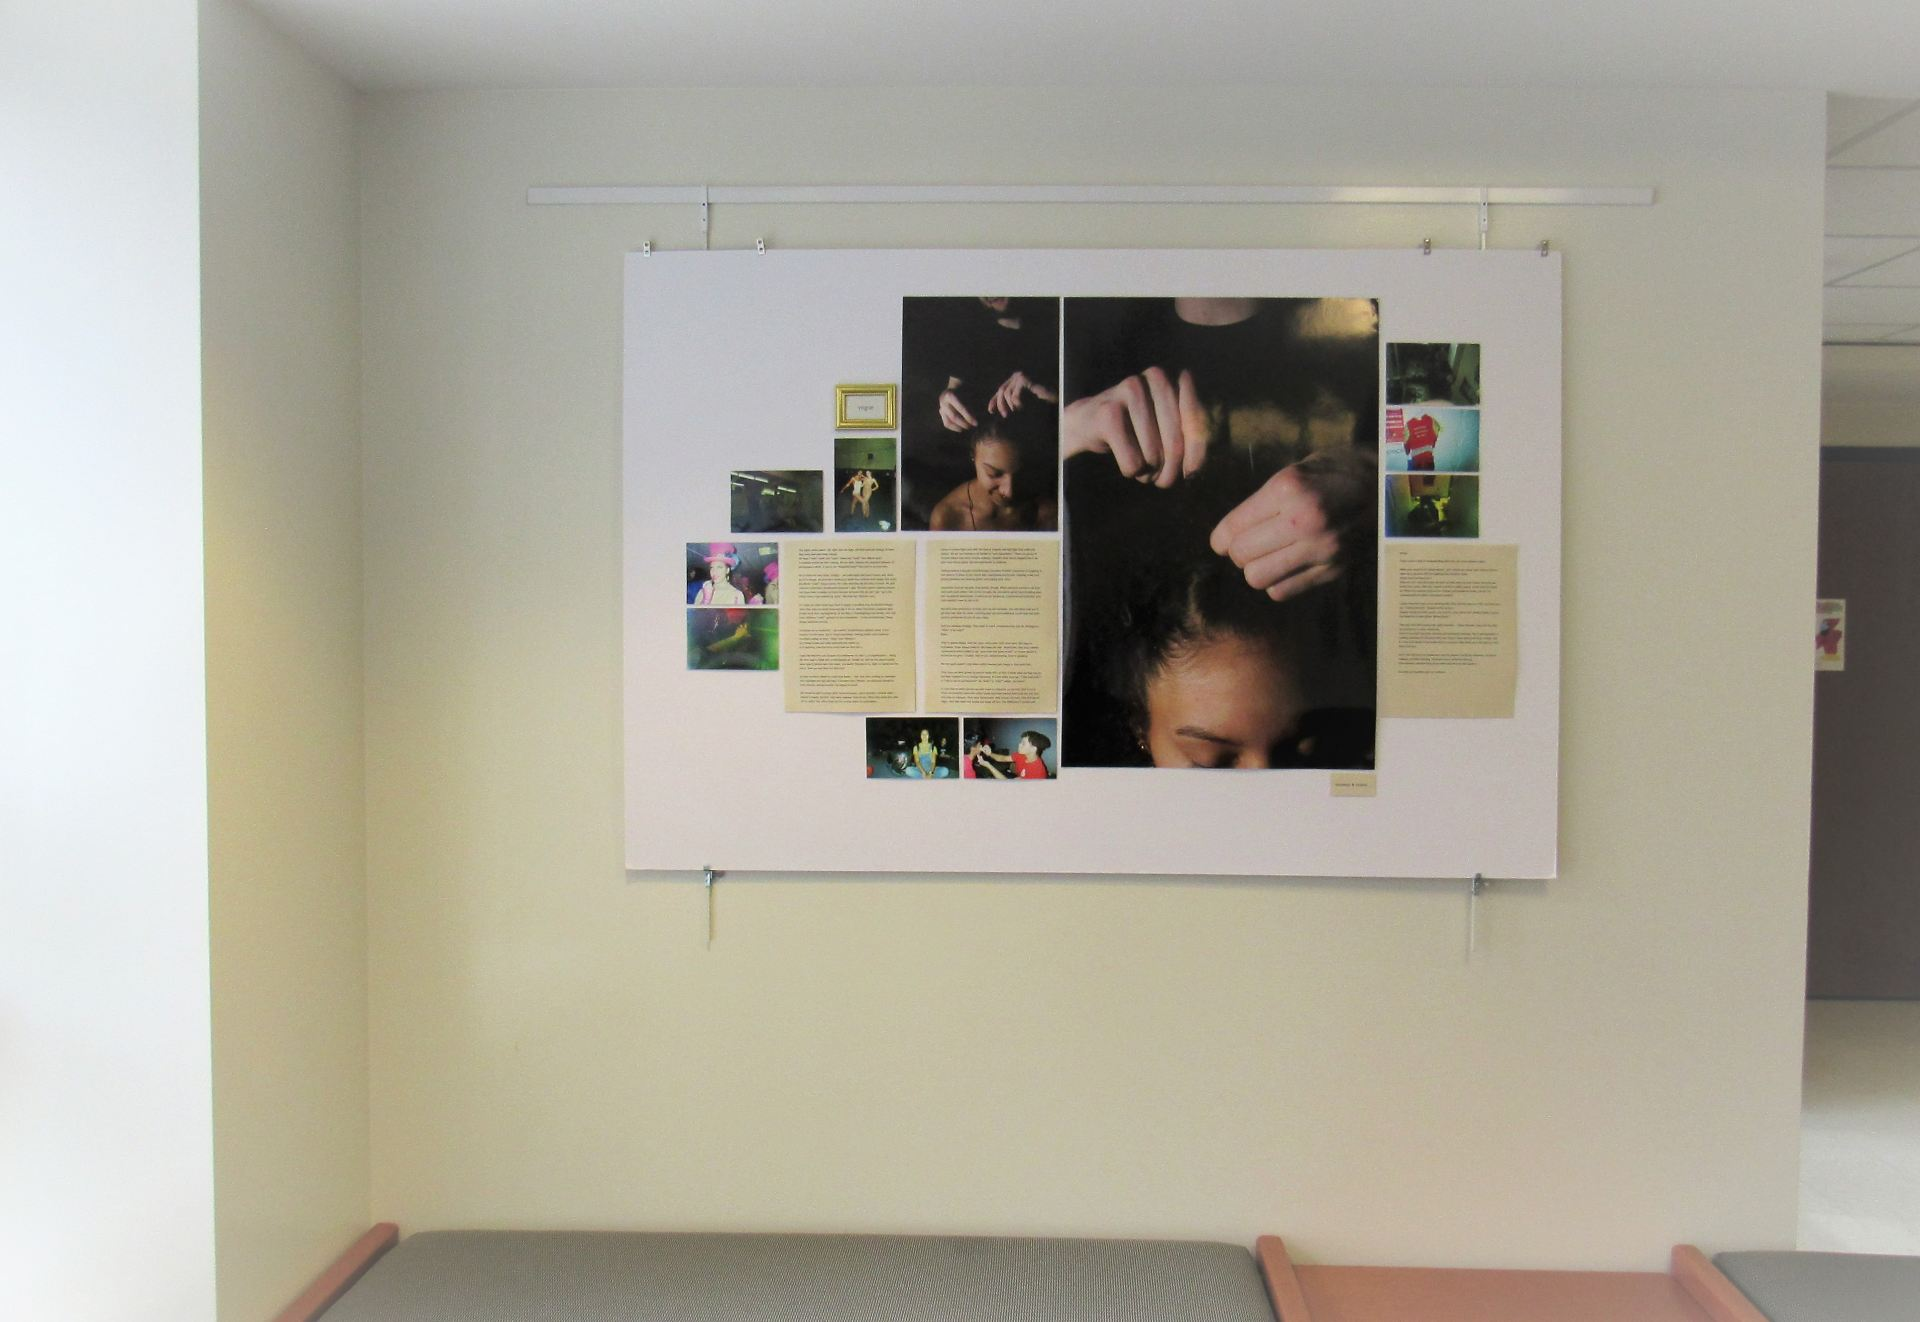 A picture of the third wall of the exhibit which shows a compilation of photographs and text.